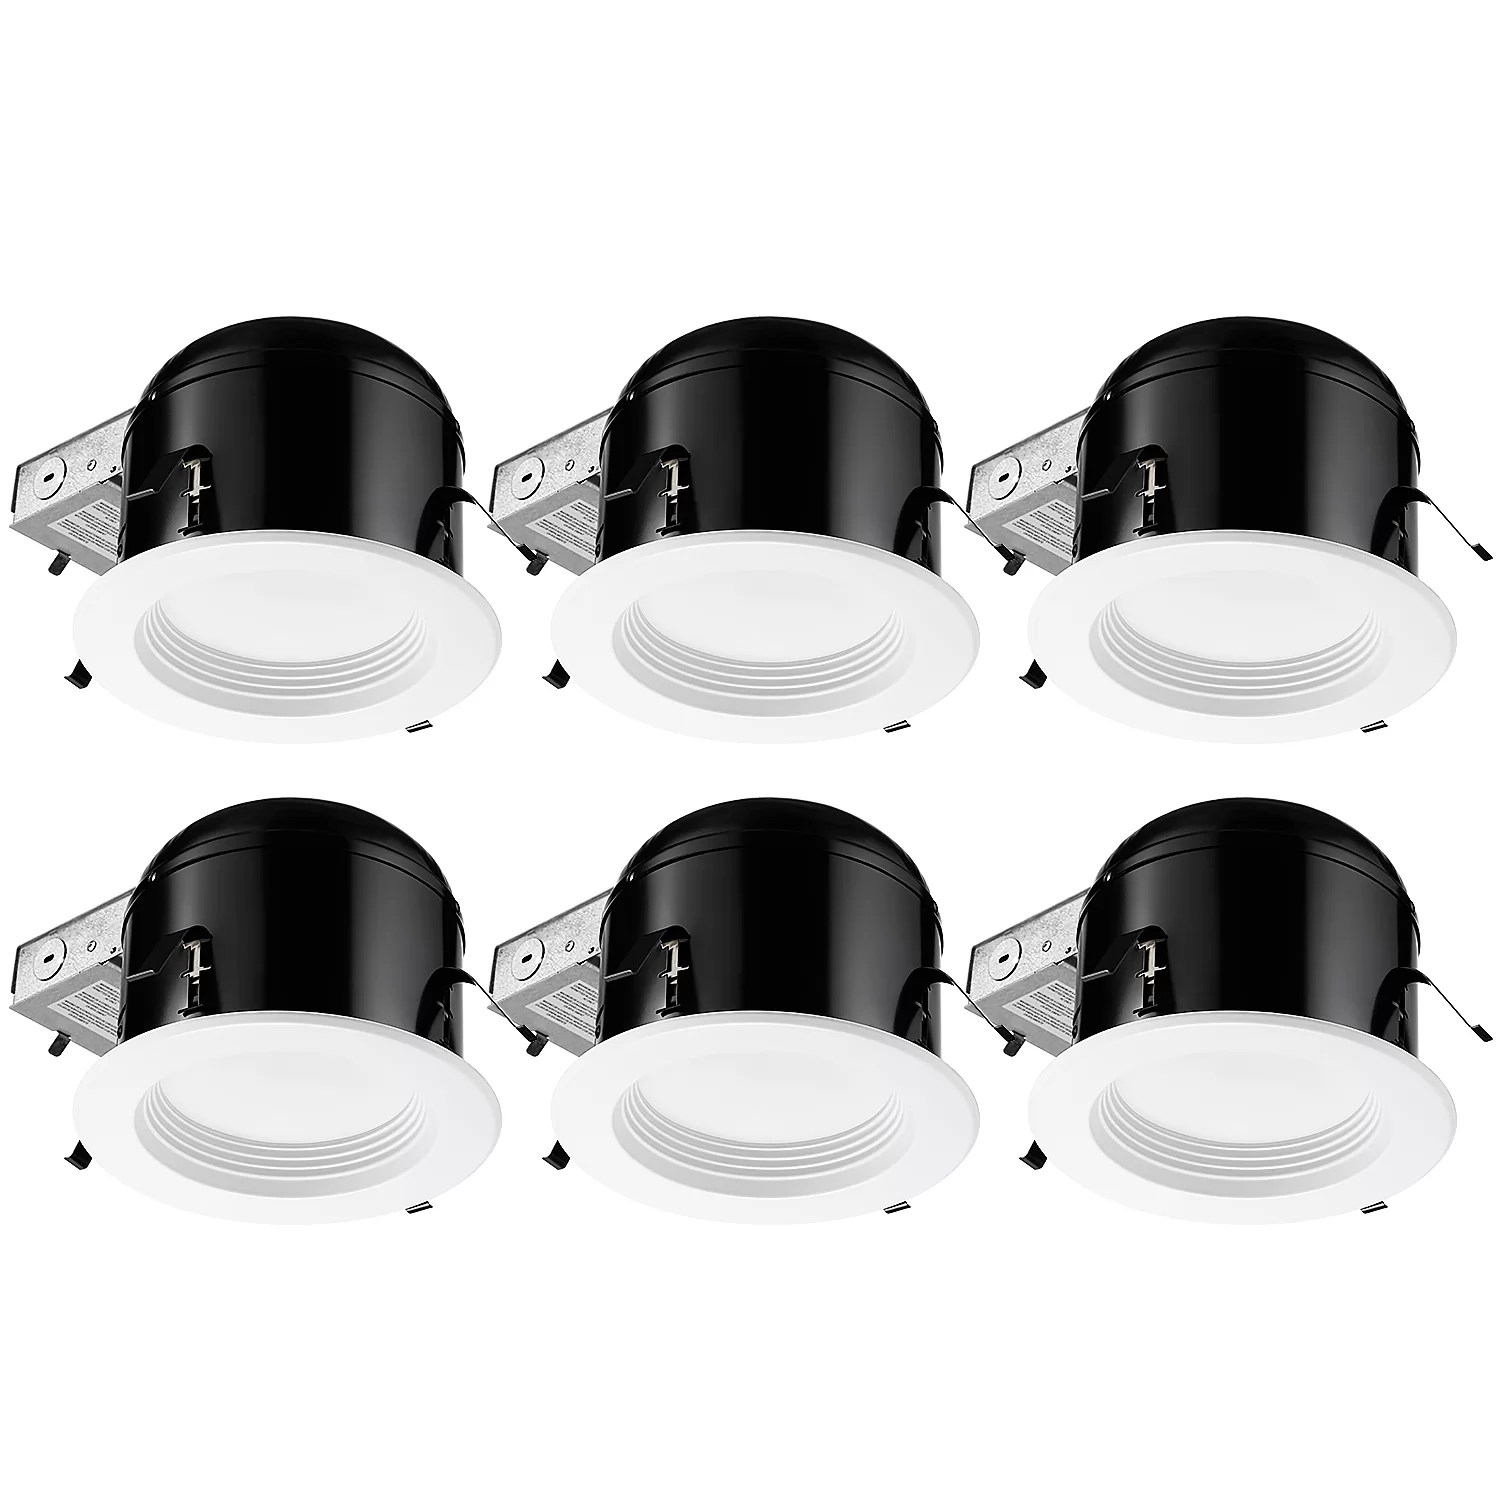 6 3000k remodel or new construction ic led recessed lighting kit